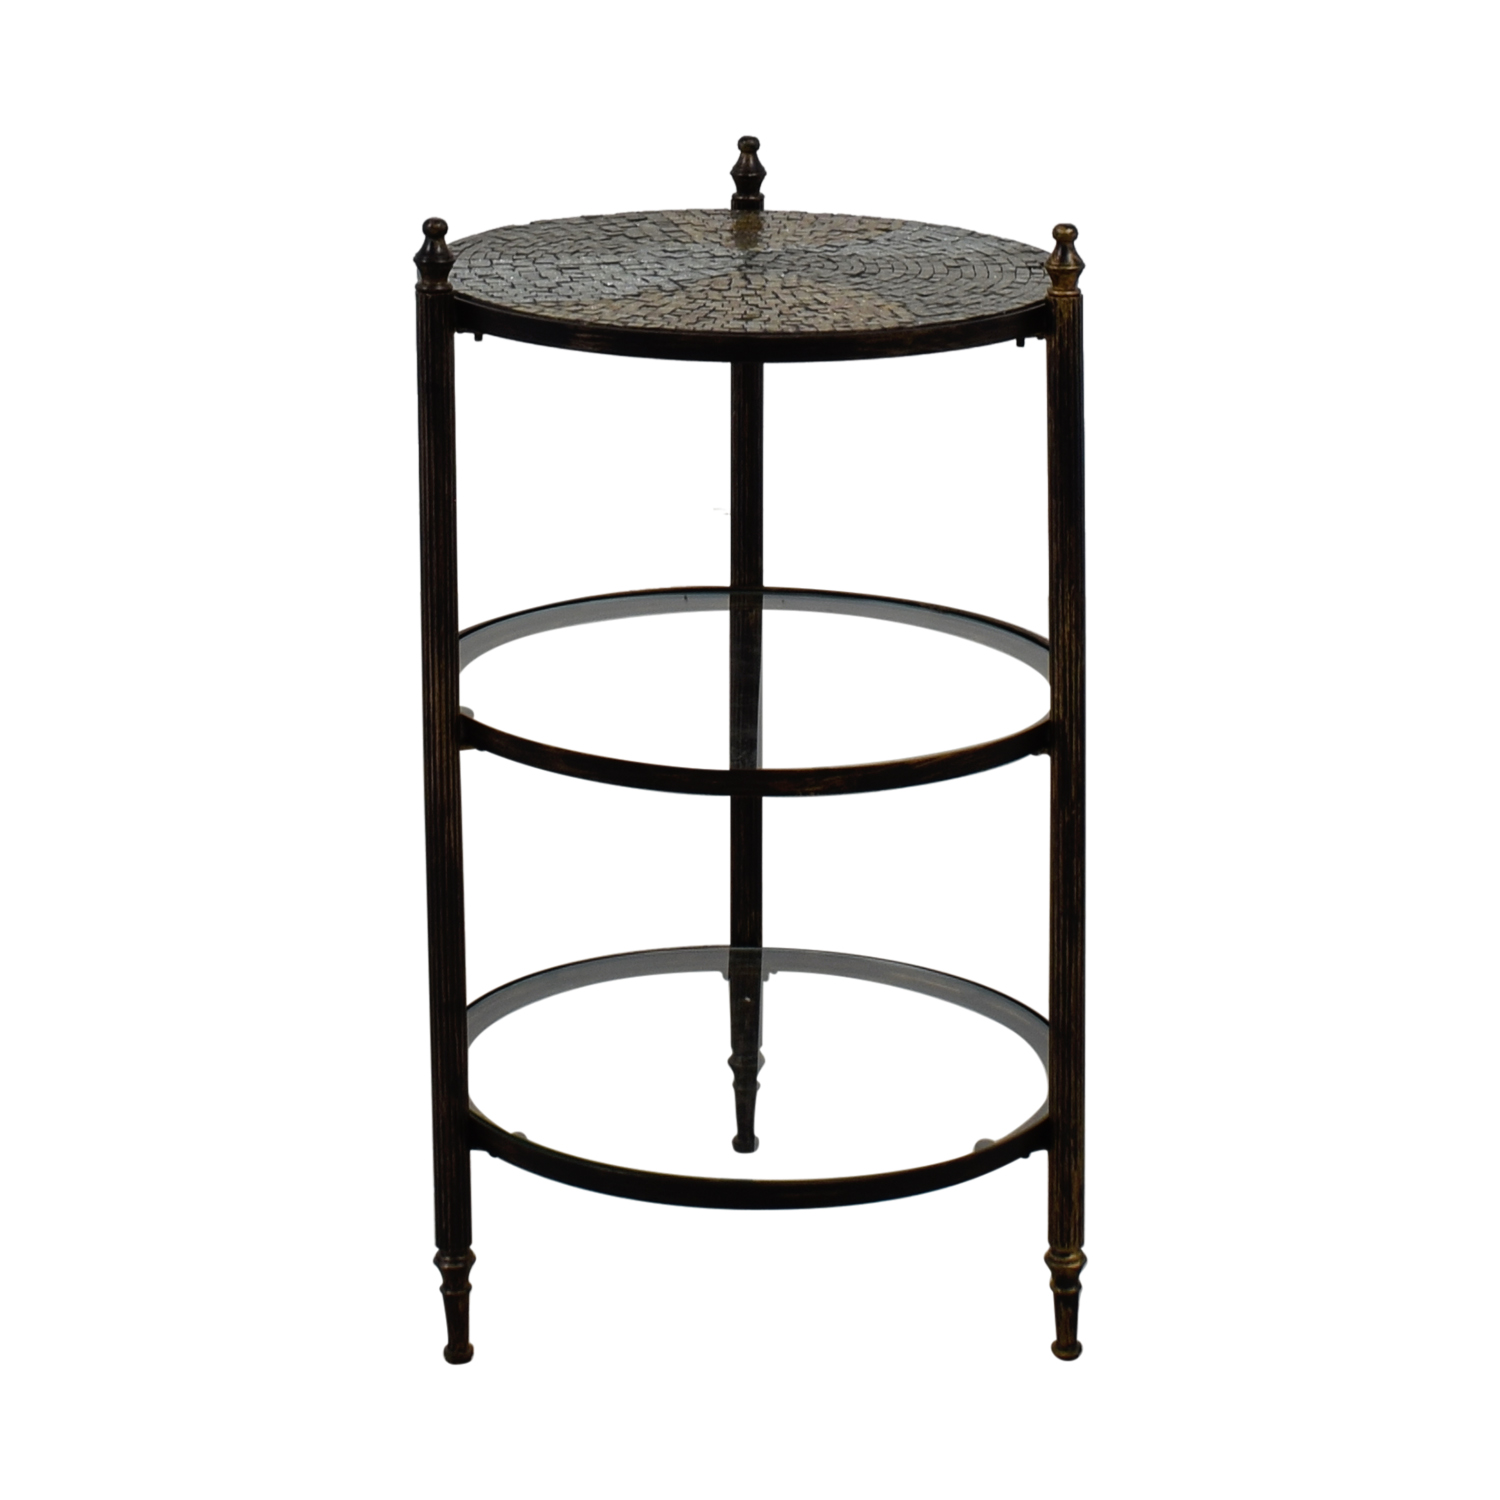 West Elm West Elm Mosaic Tiered End Table on sale